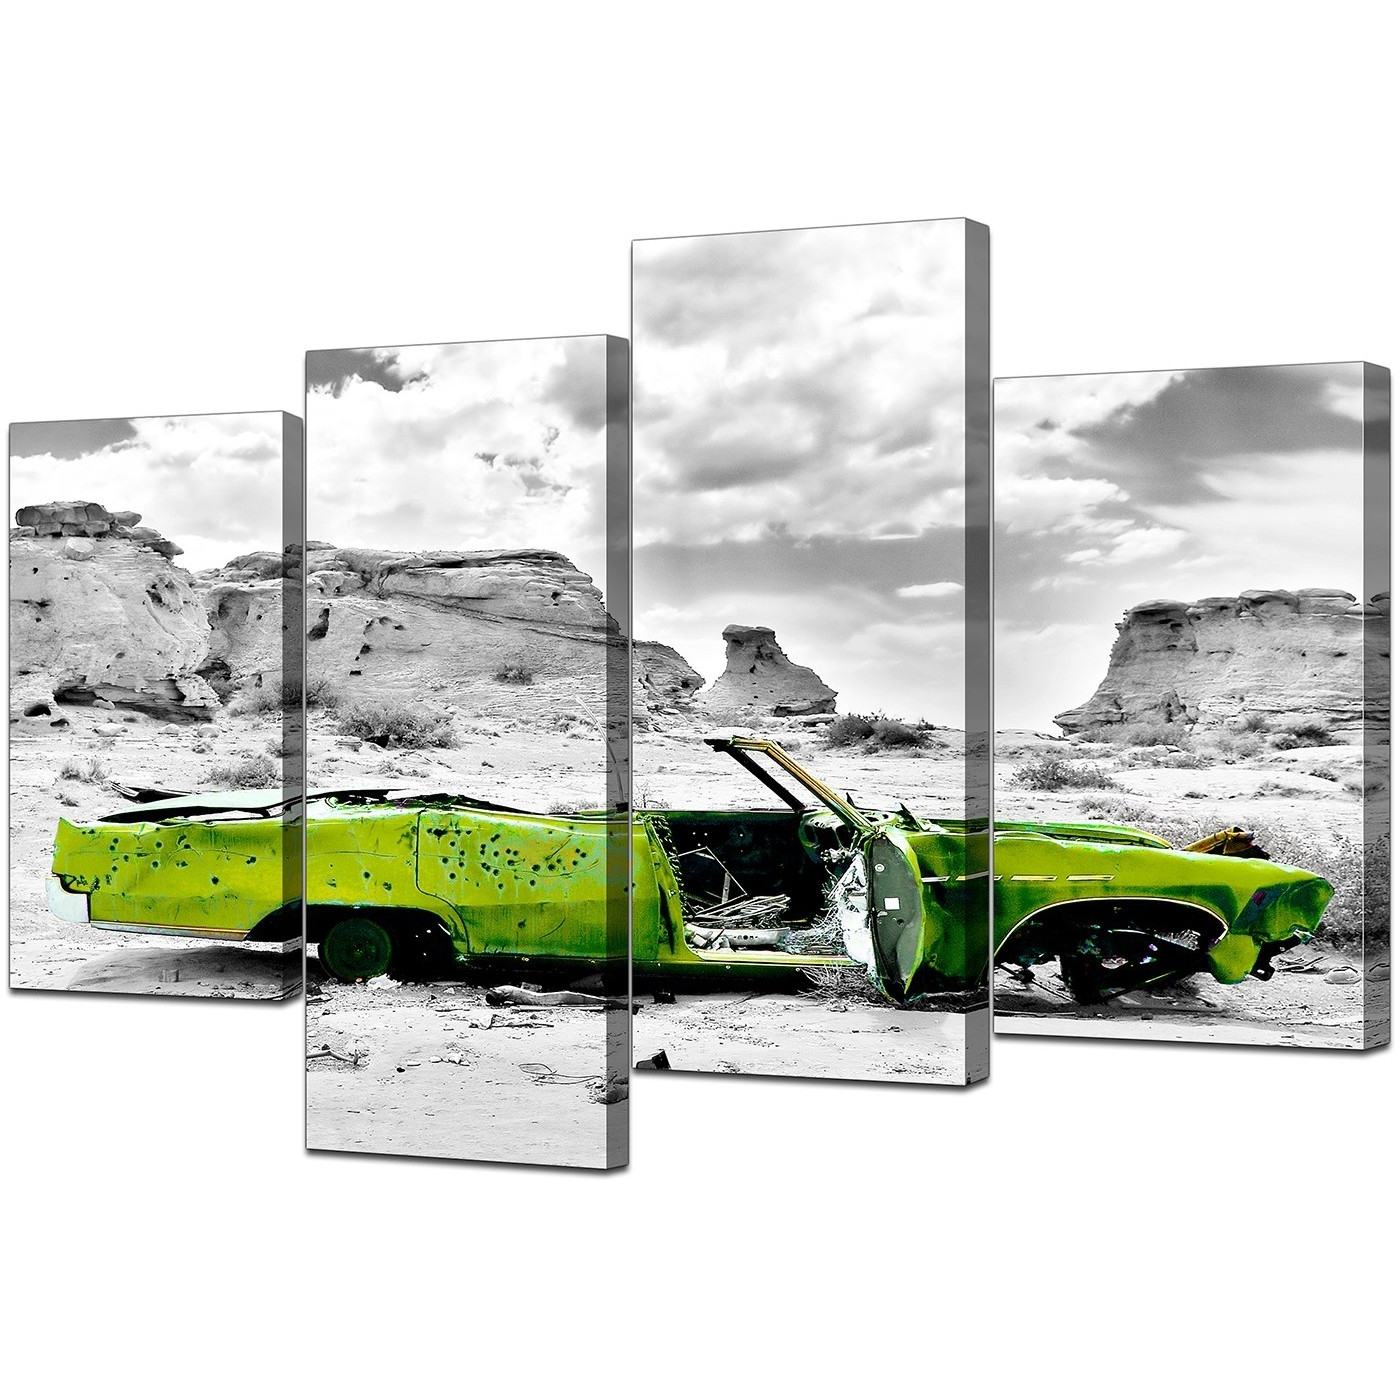 Trendy Car Canvas Wall Art Pertaining To Canvas Art Of Green Car In Black & White For Your Office (View 4 of 15)